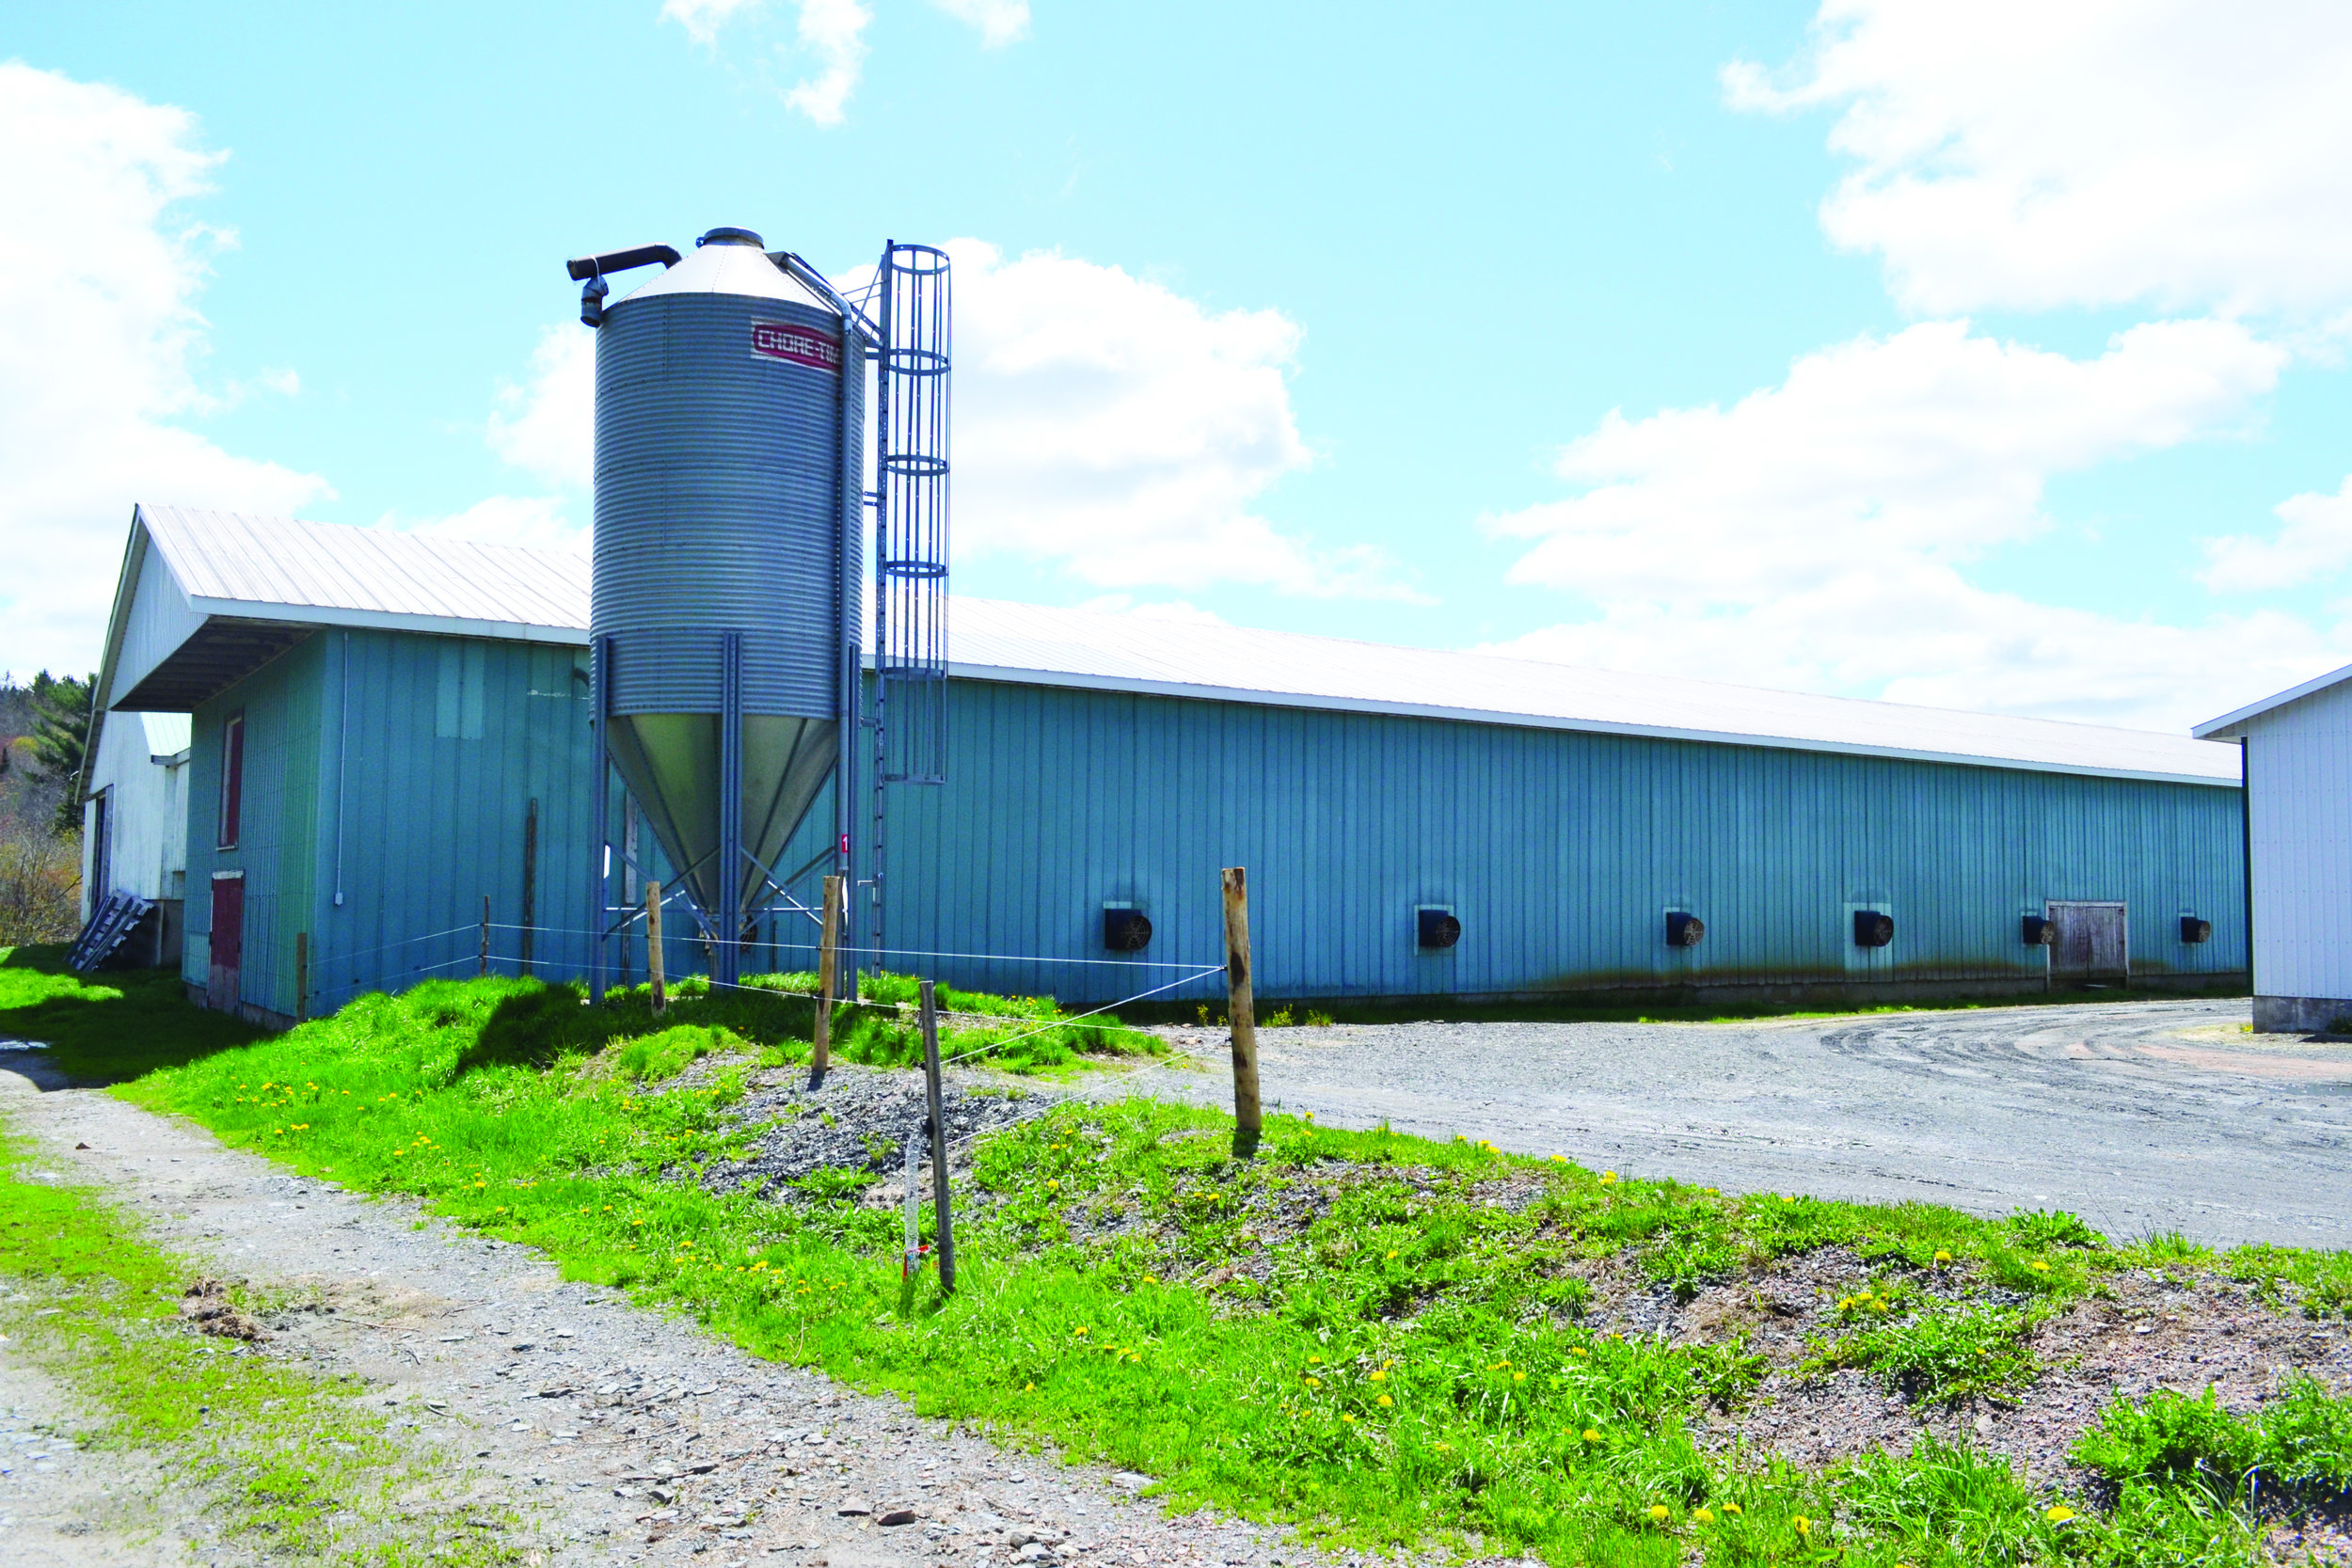 The new layer barn at DeLong Farms replaces this one, which was built in 1975